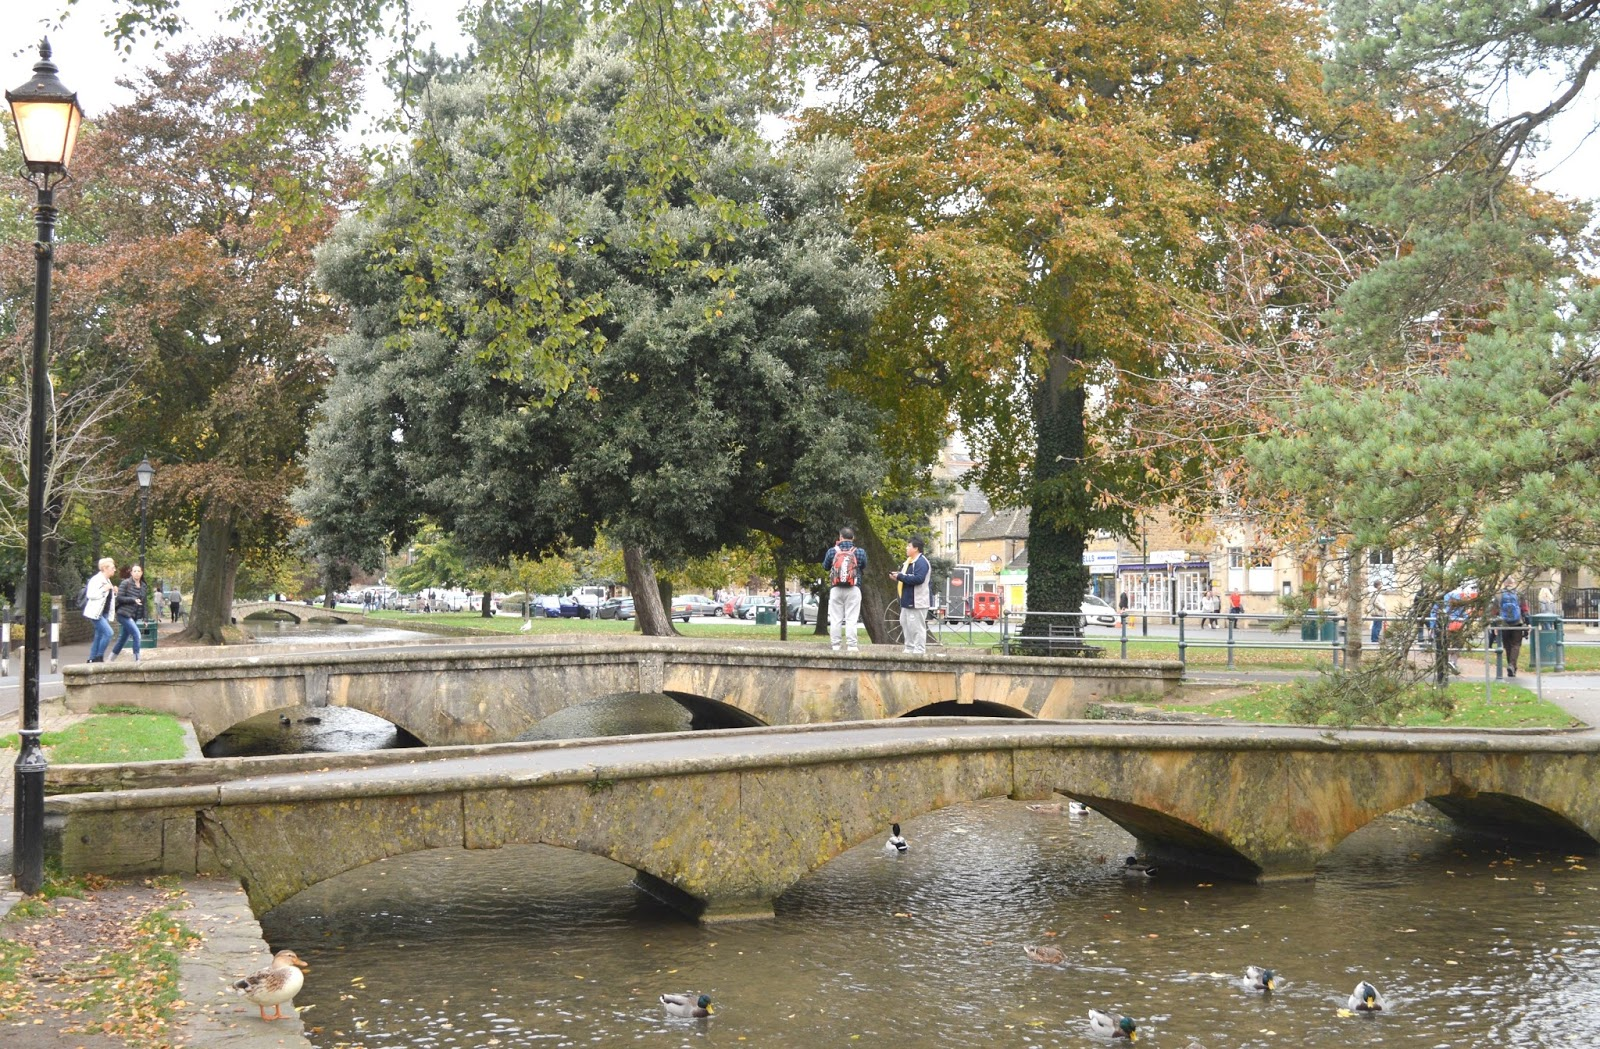 Spend a day in the Cotswolds - Bourton on the Water